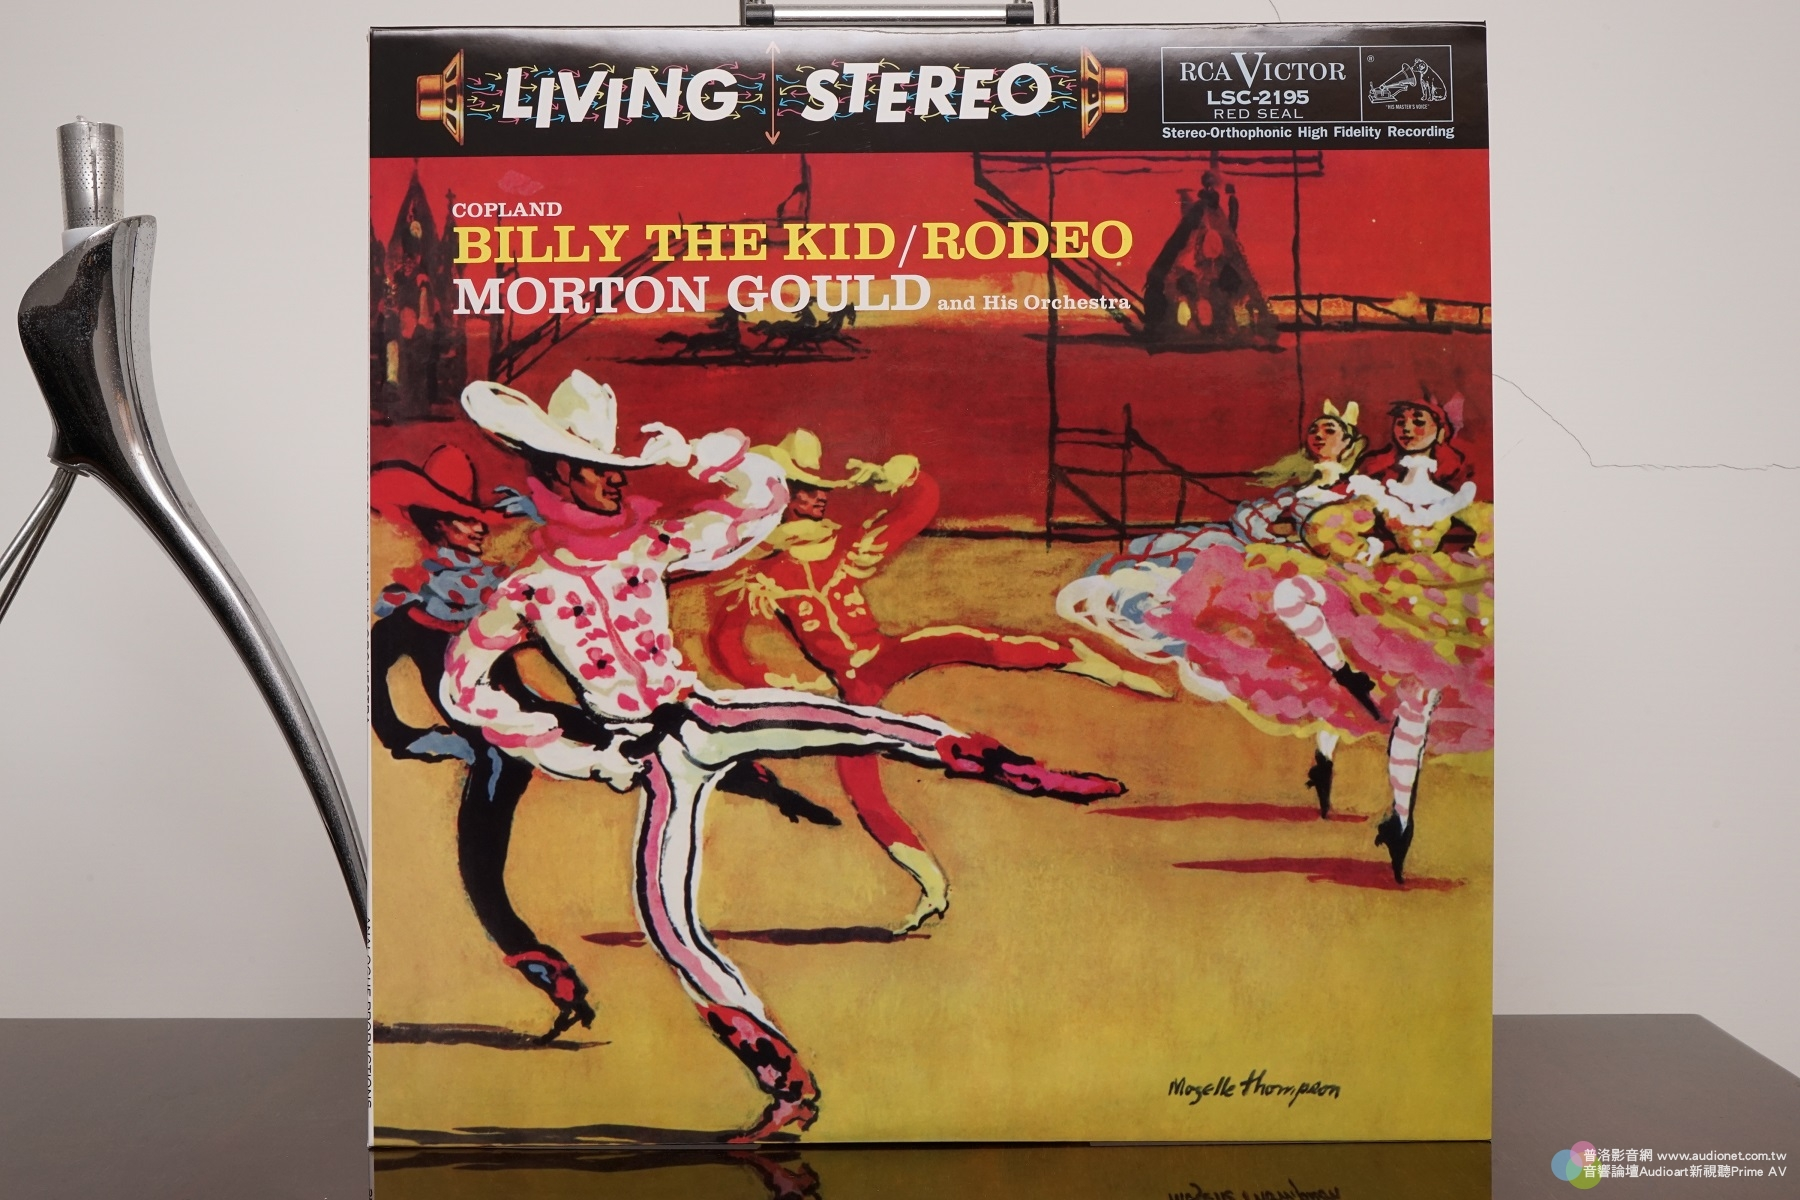 Copland Billy the Kid, Rodeo